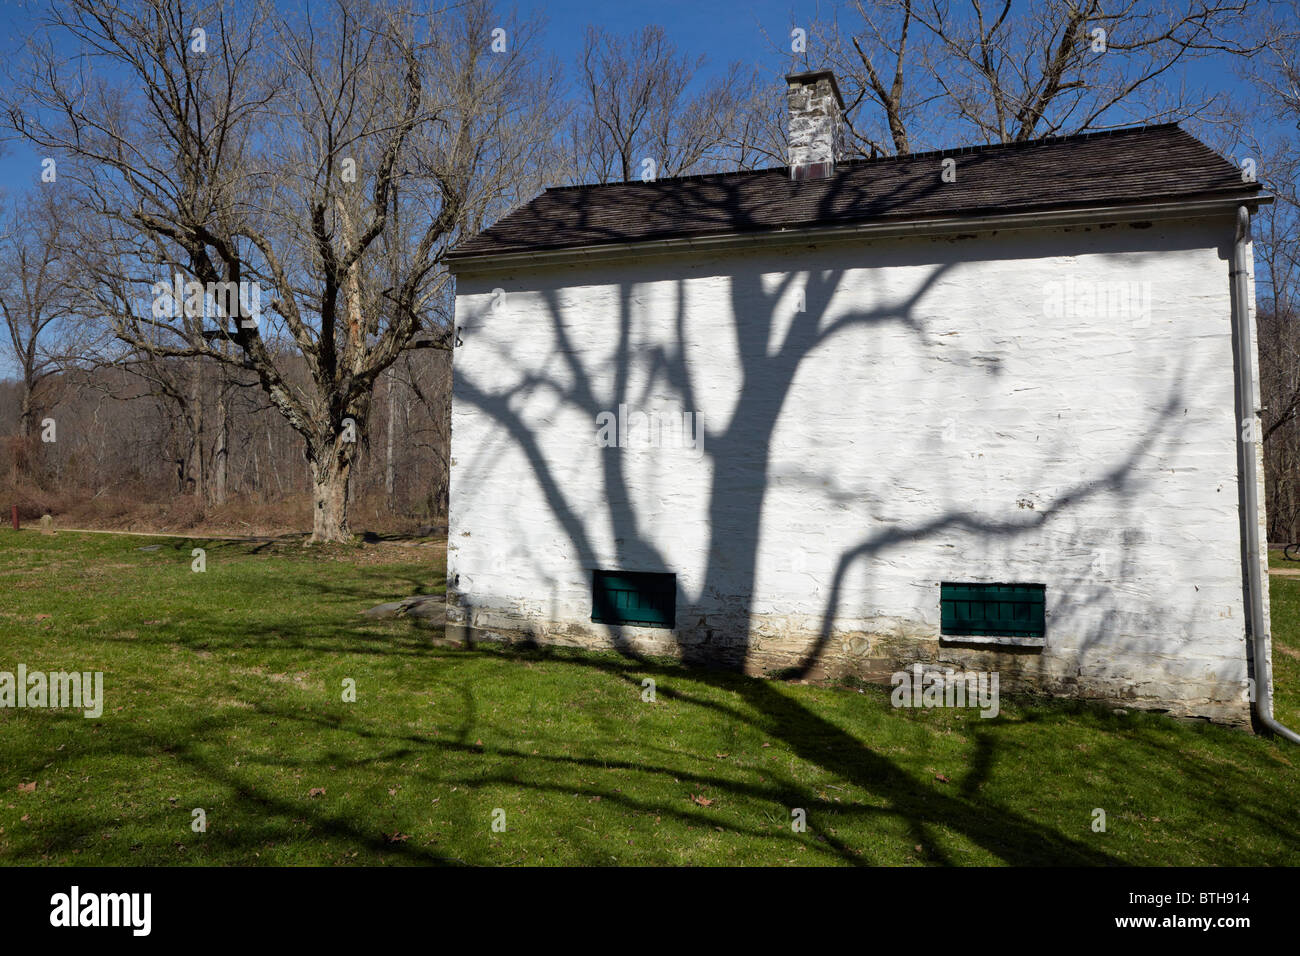 The rear exterior of Lockhouse 11 on the C&O Canal, Potomac, Maryland. - Stock Image